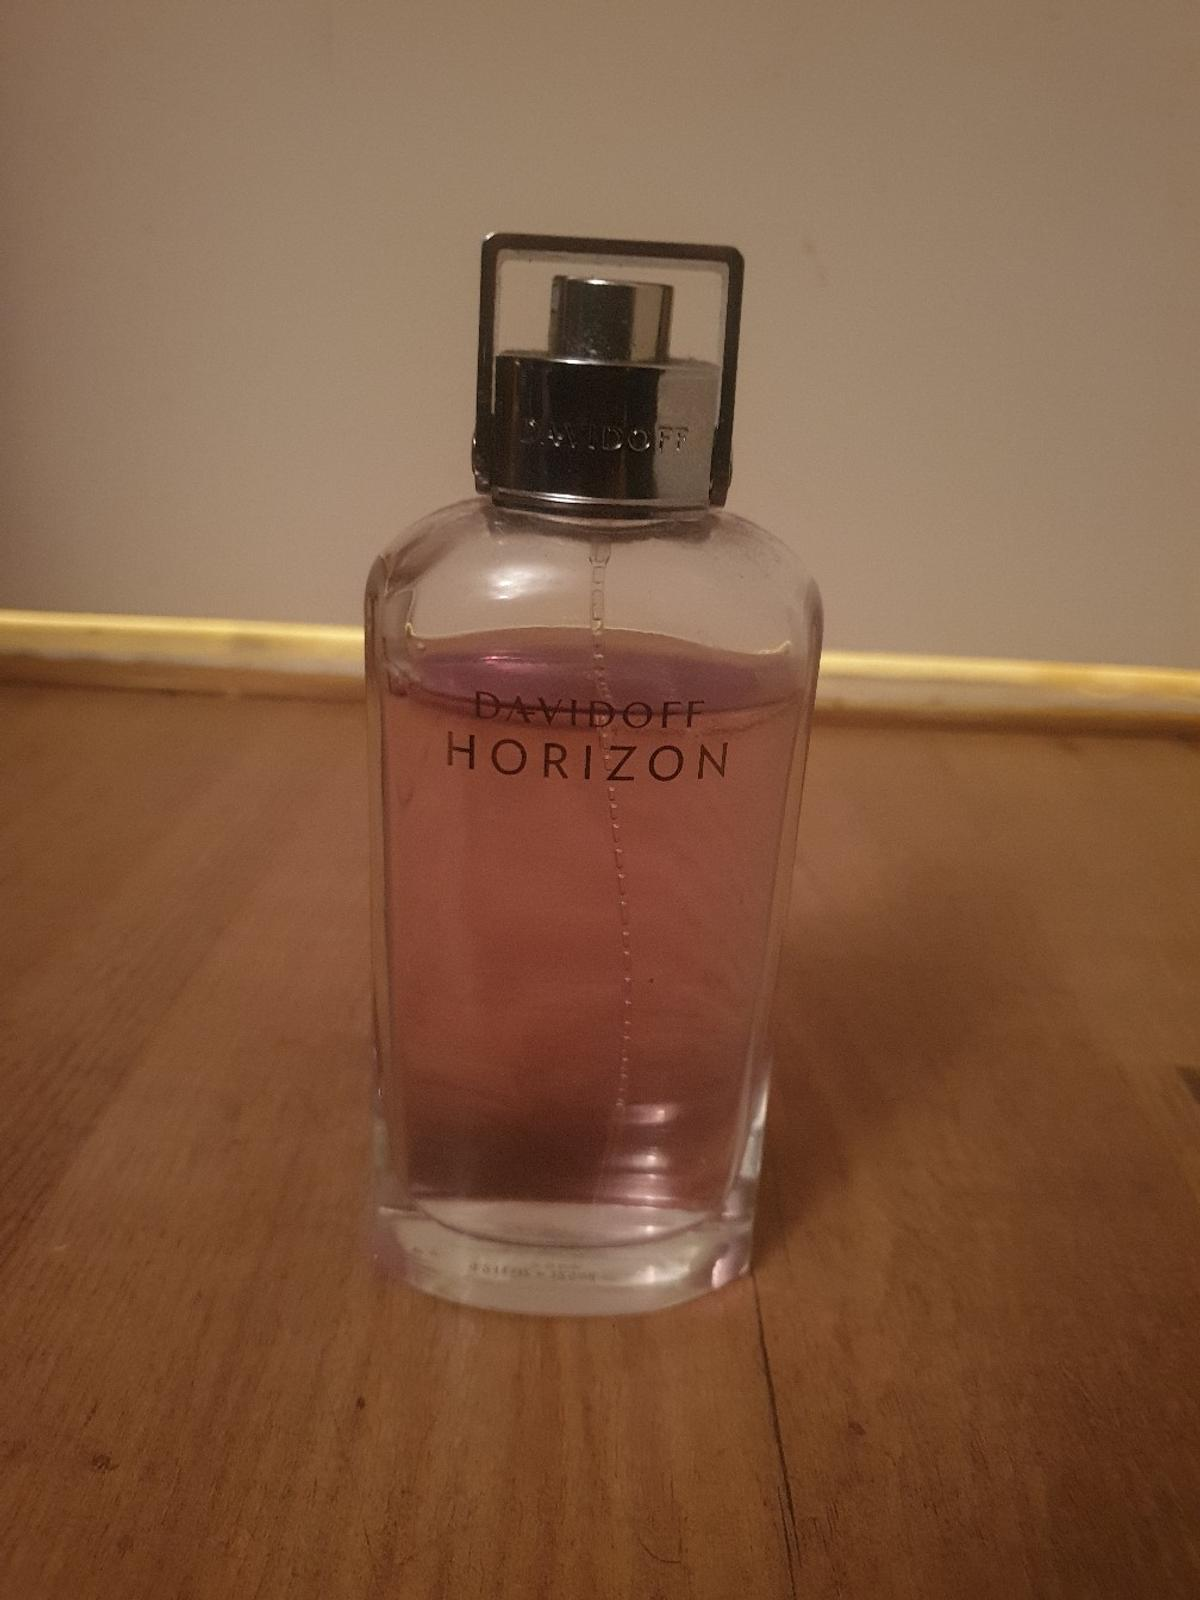 davidoff horizon 125ml bottle 100ml left in bottle £13 ono